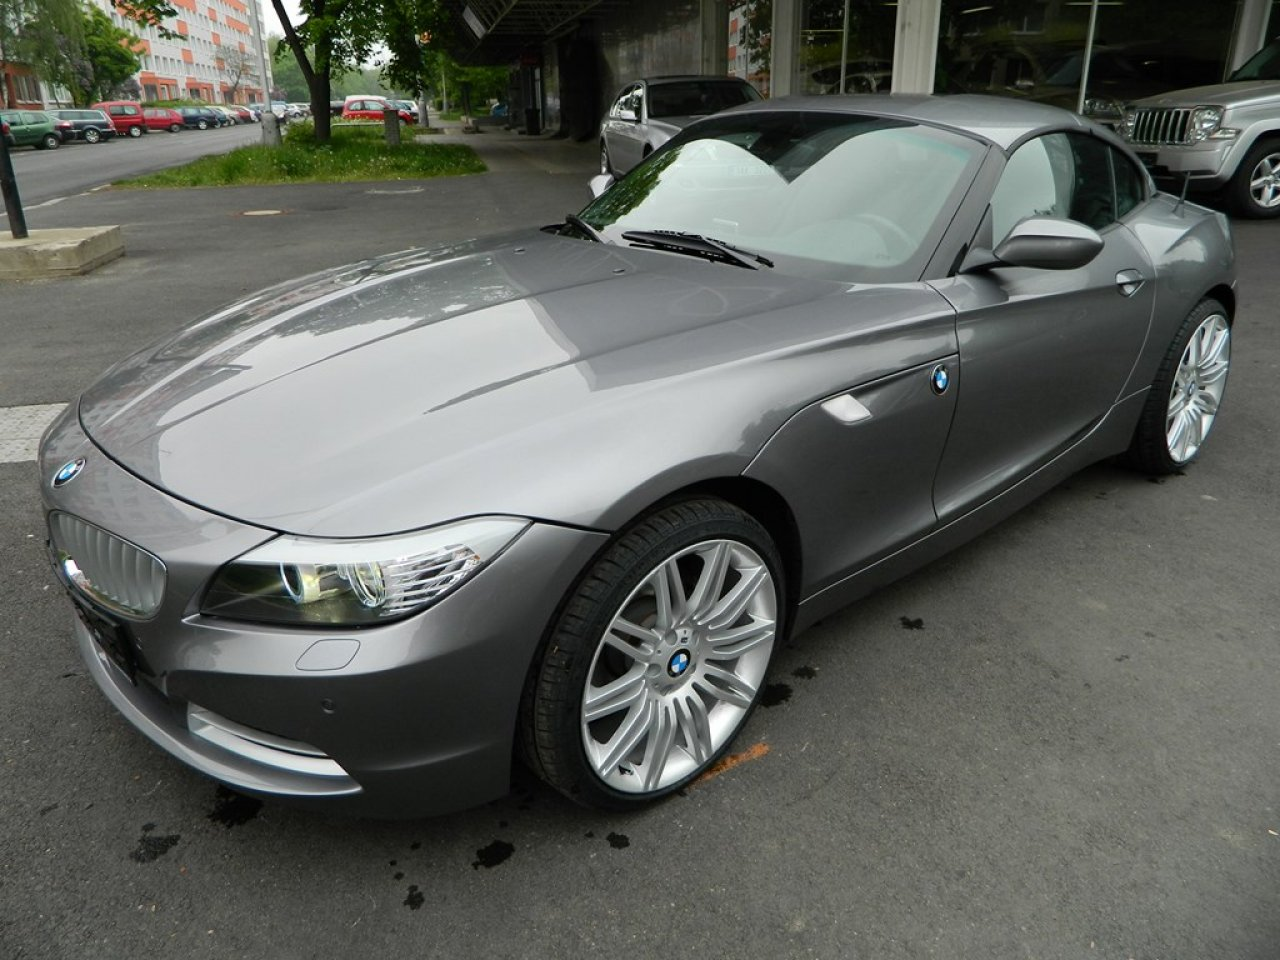 bmw z4 23i autosalon ediv mejkal praha prosek. Black Bedroom Furniture Sets. Home Design Ideas